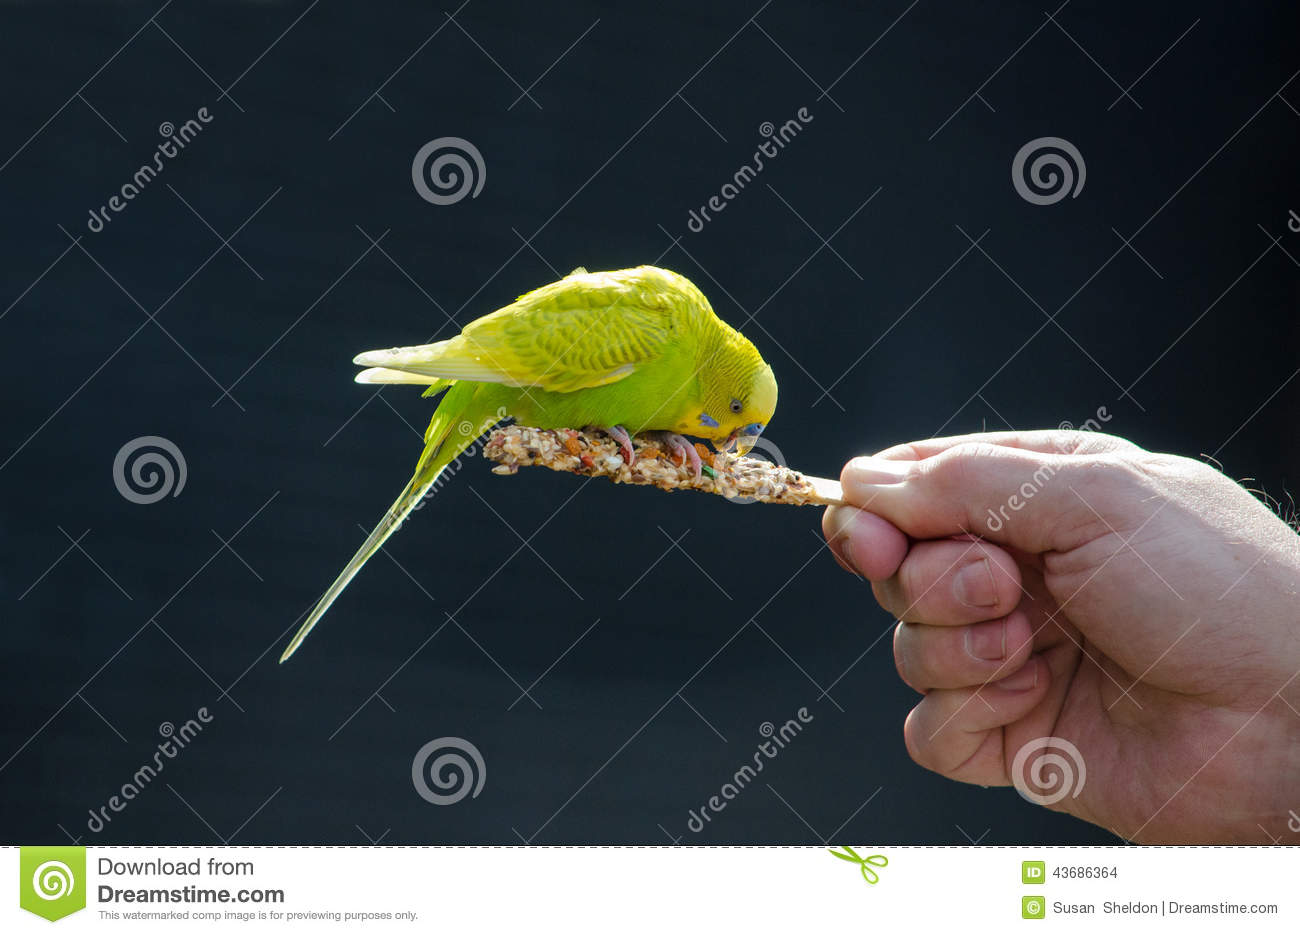 Bird On A Stick Eating Food Stock Photo - Image of fingers